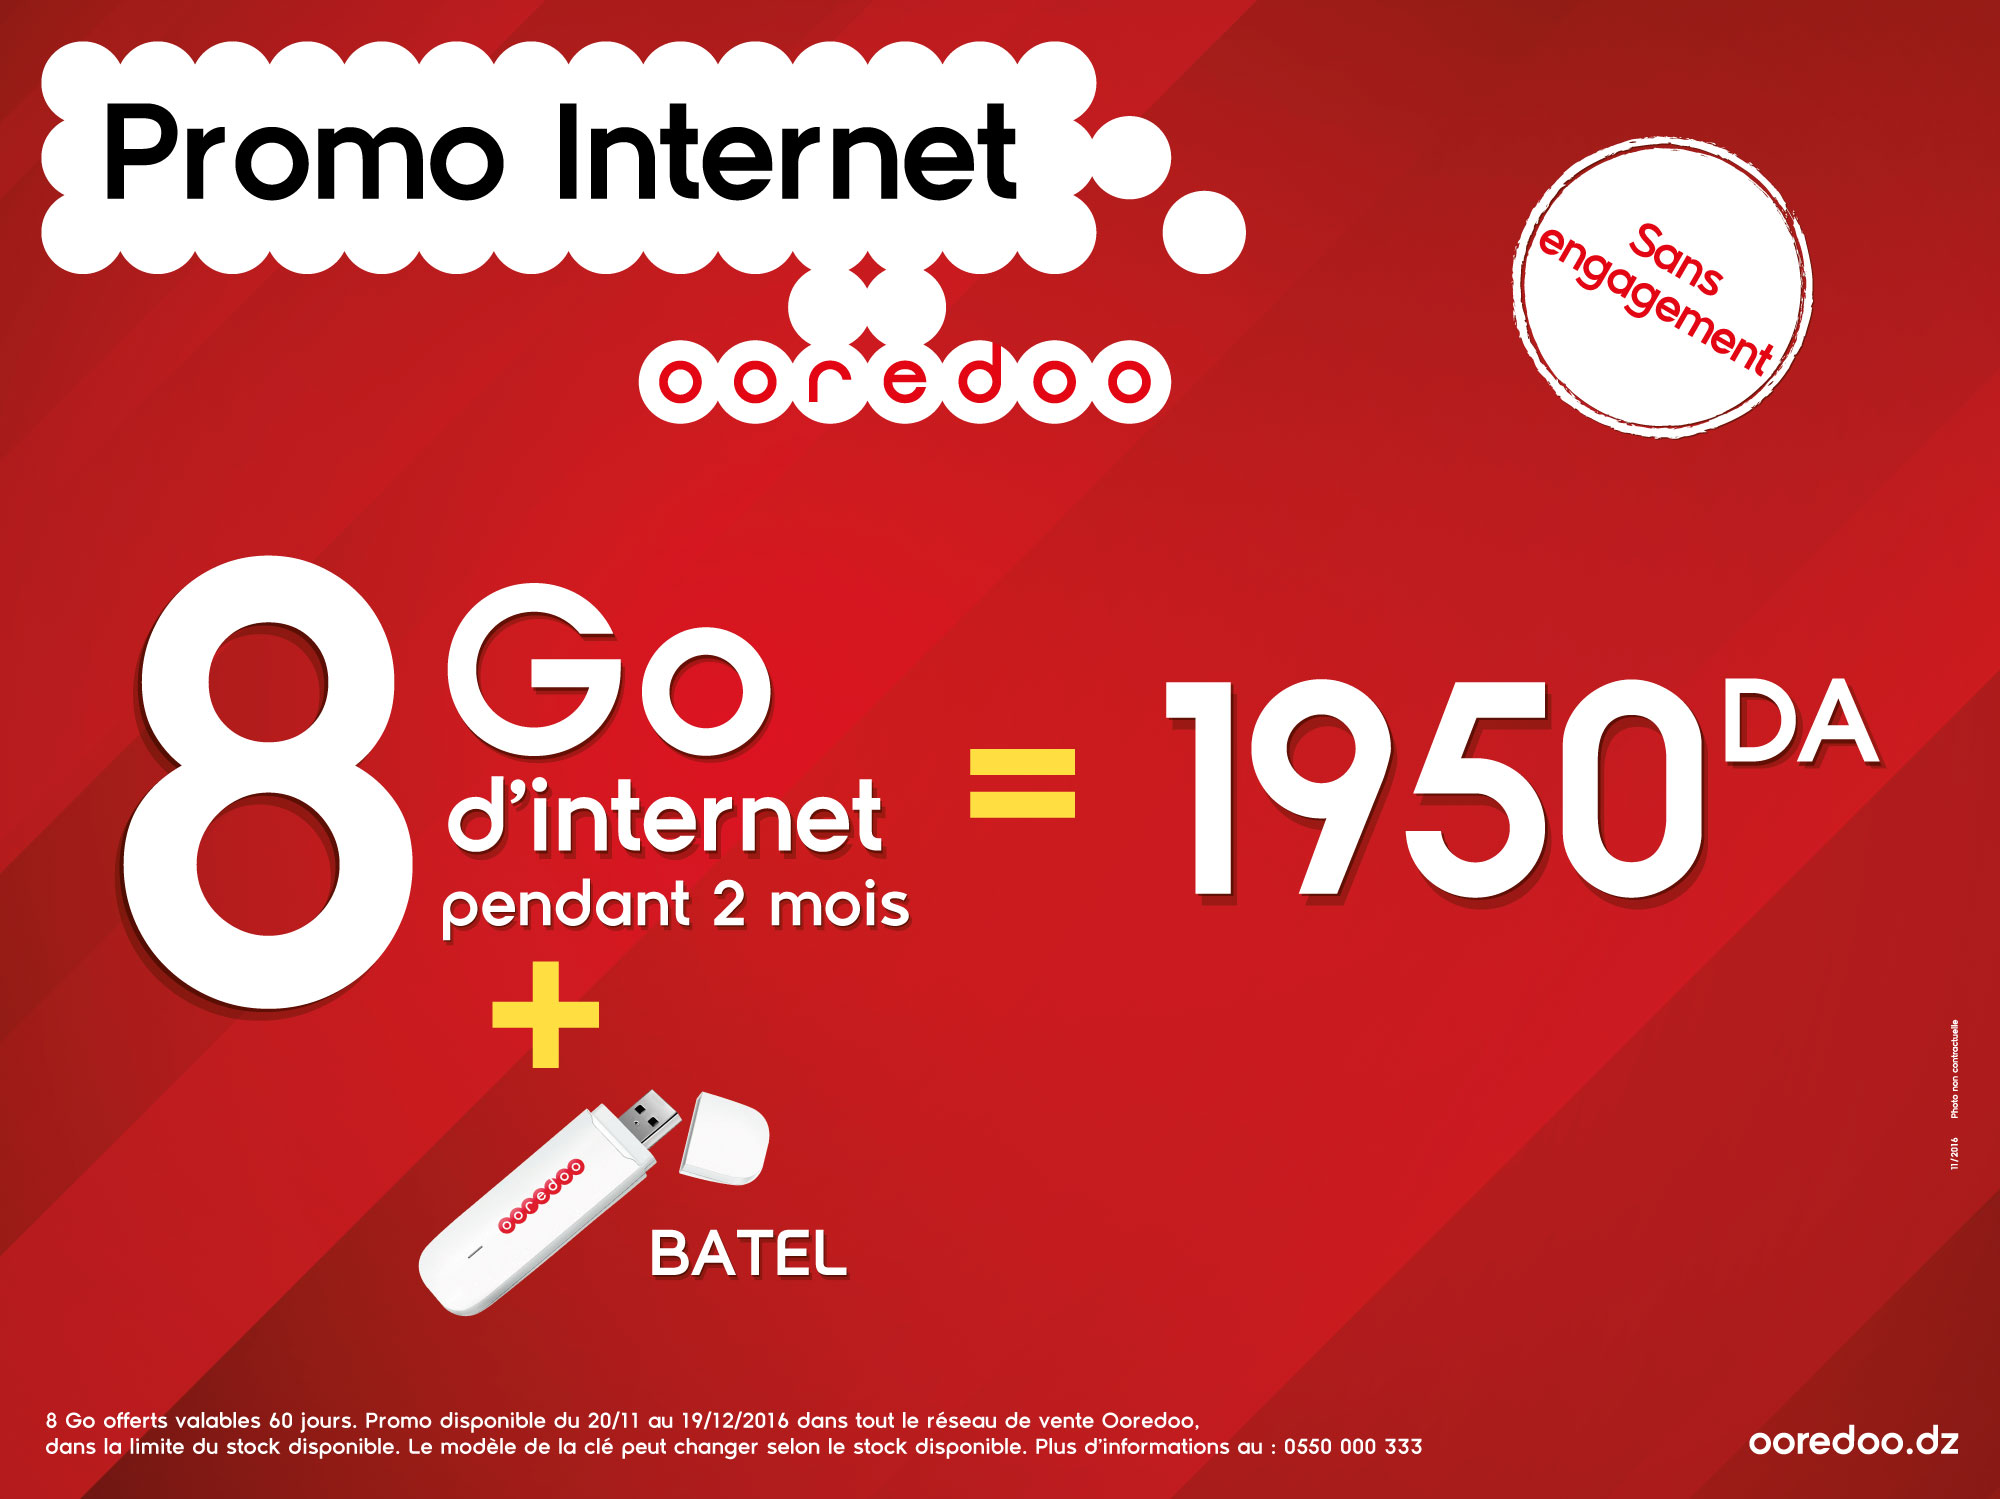 Ooredoo offre 8GO internet